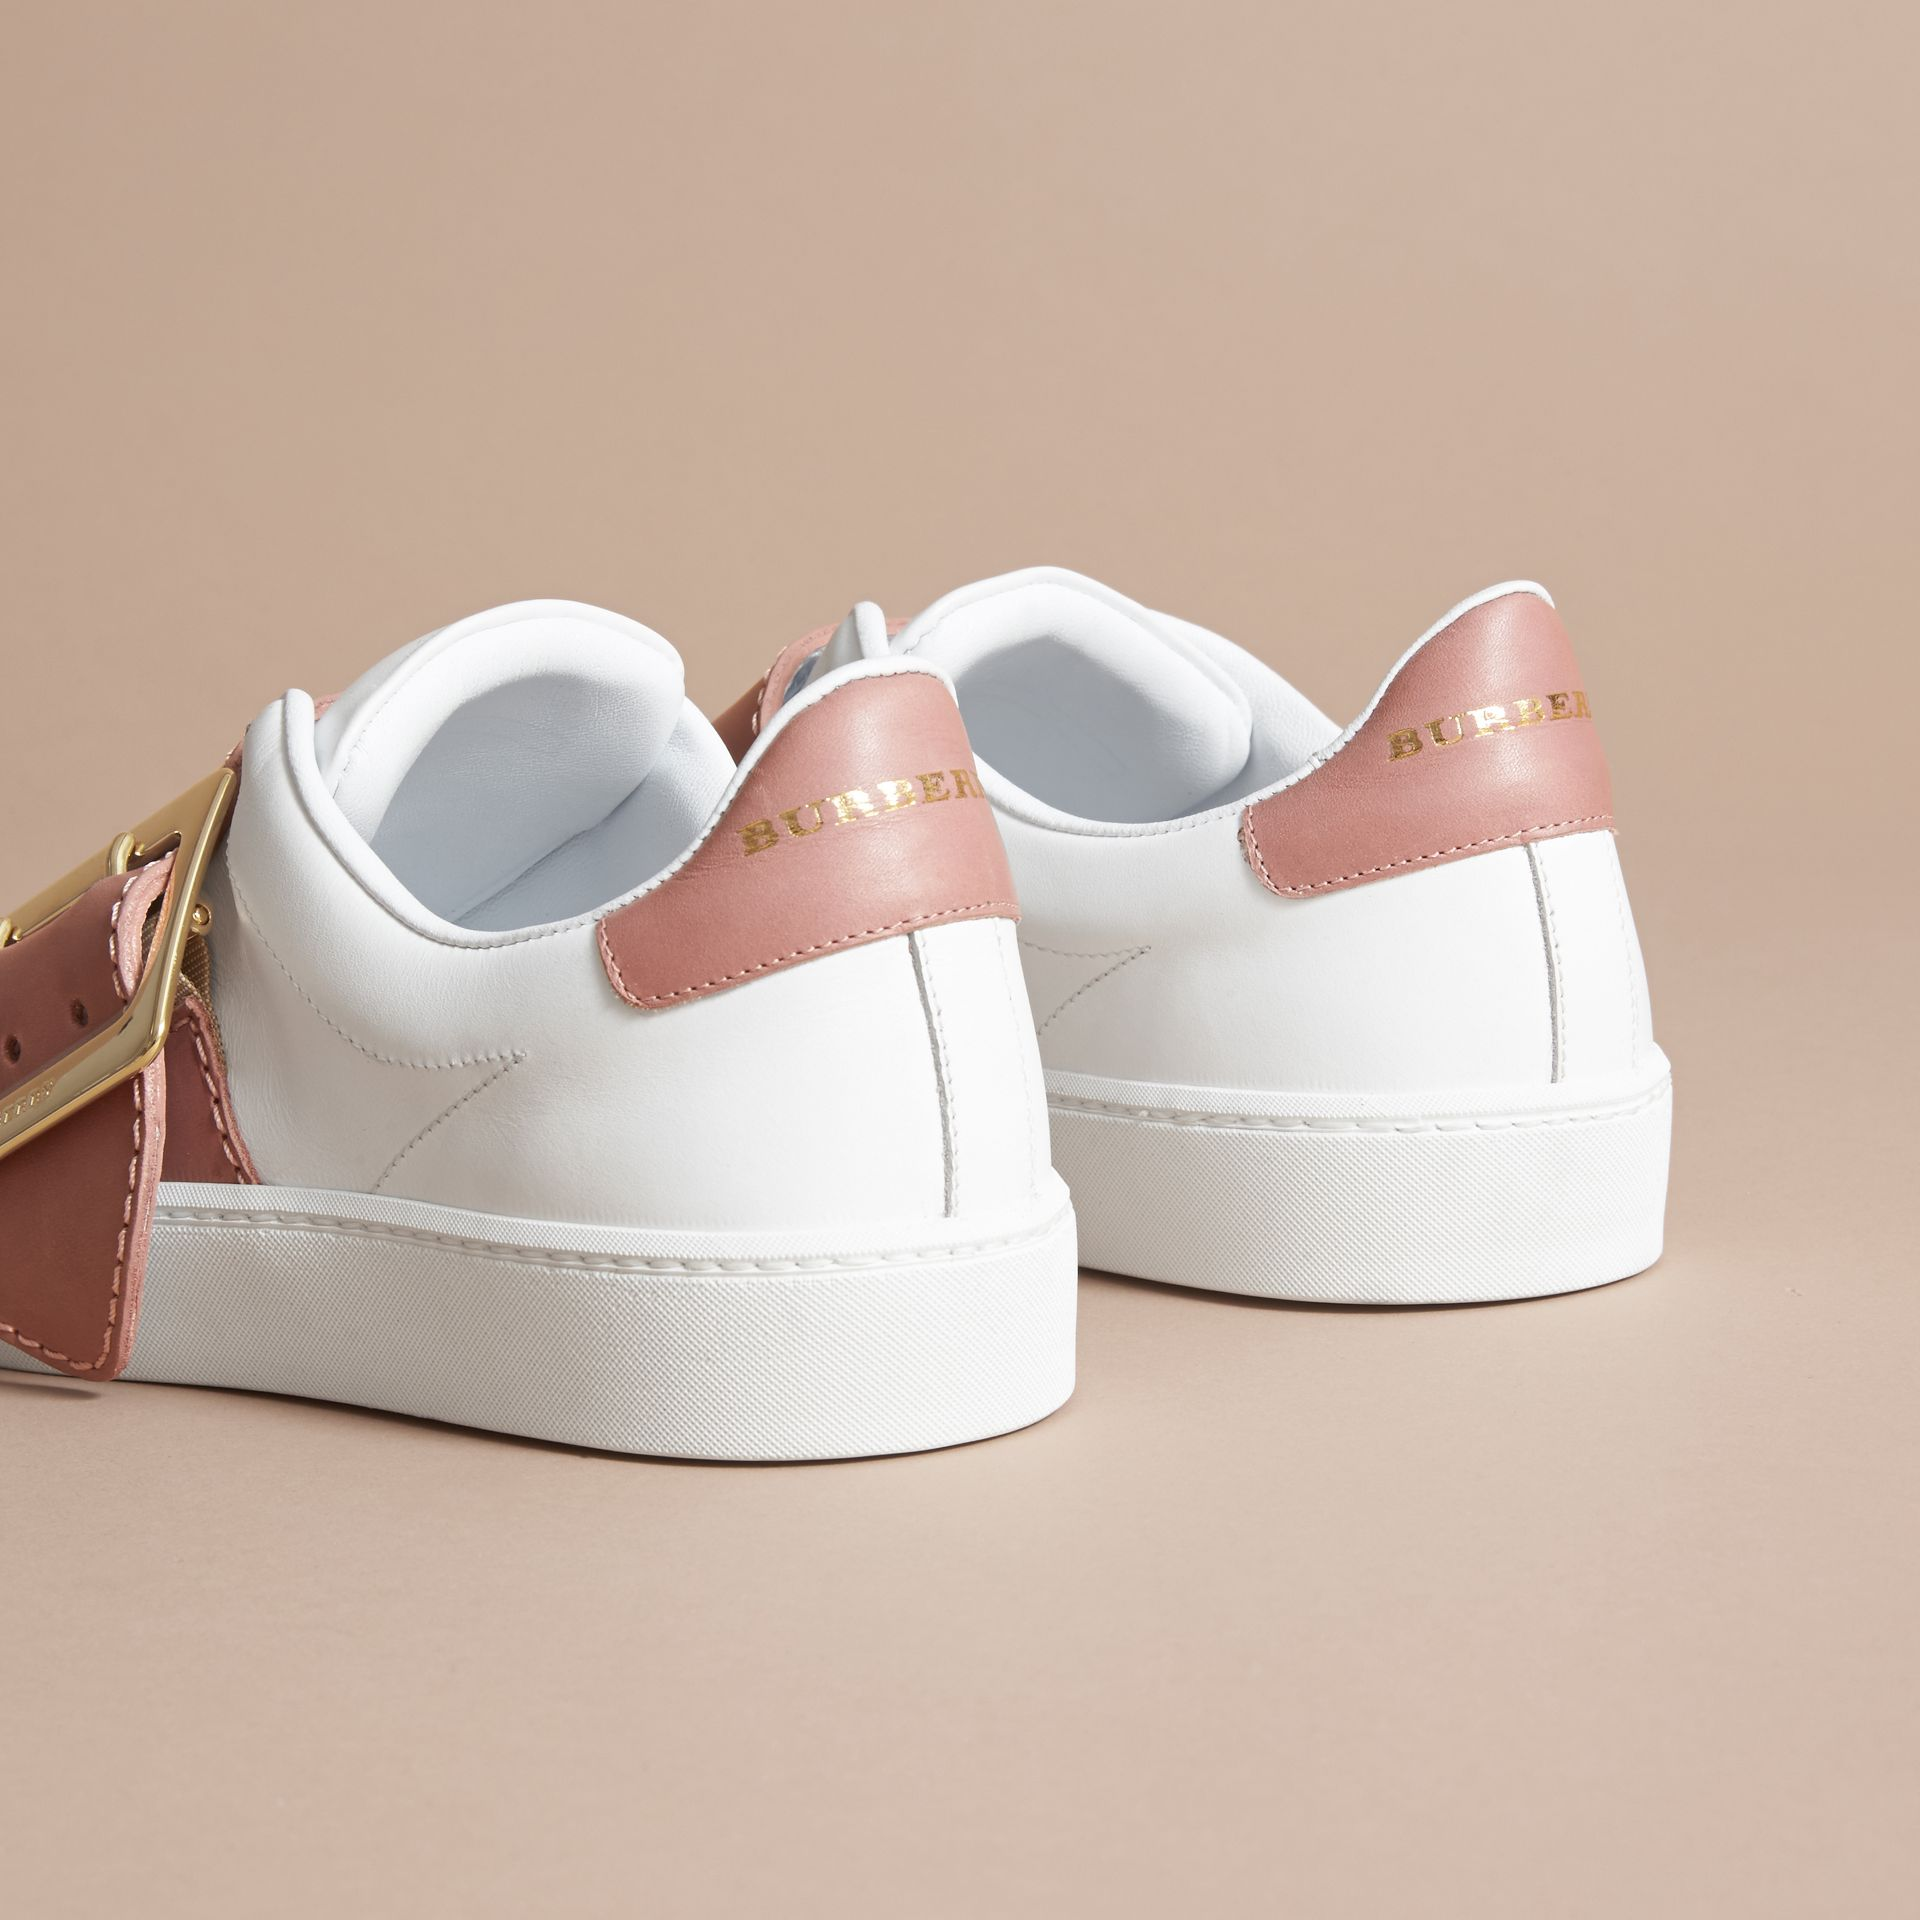 Buckle Detail Leather Trainers in Pink Apricot - Women | Burberry United States - gallery image 4